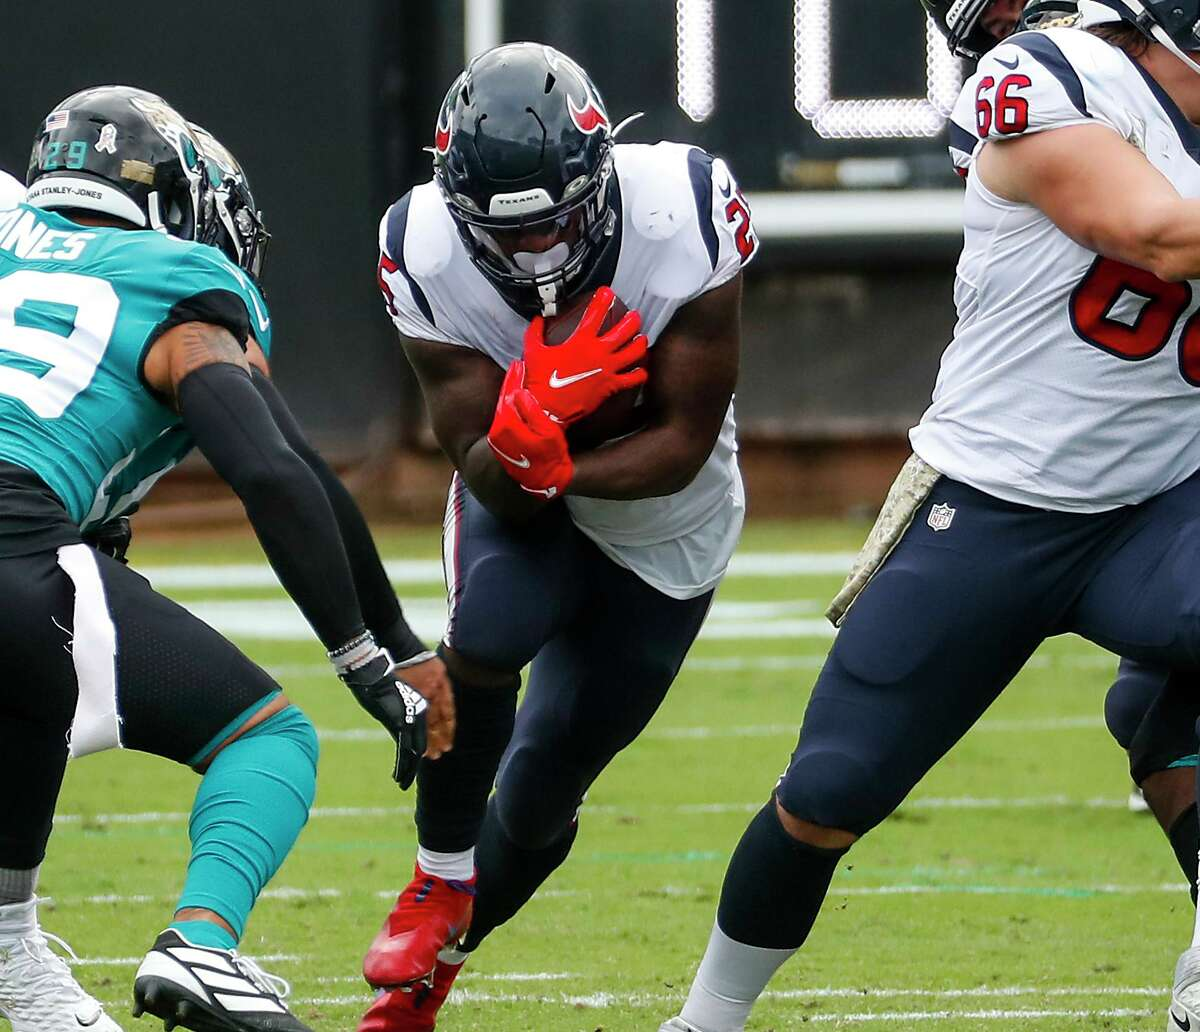 Texans running back Duke Johnson had a career-high 20 touches in last week's win over the Jaguars, garnering 16 rushing attempts (including a 1-yard touchdown dive) and four receptions.